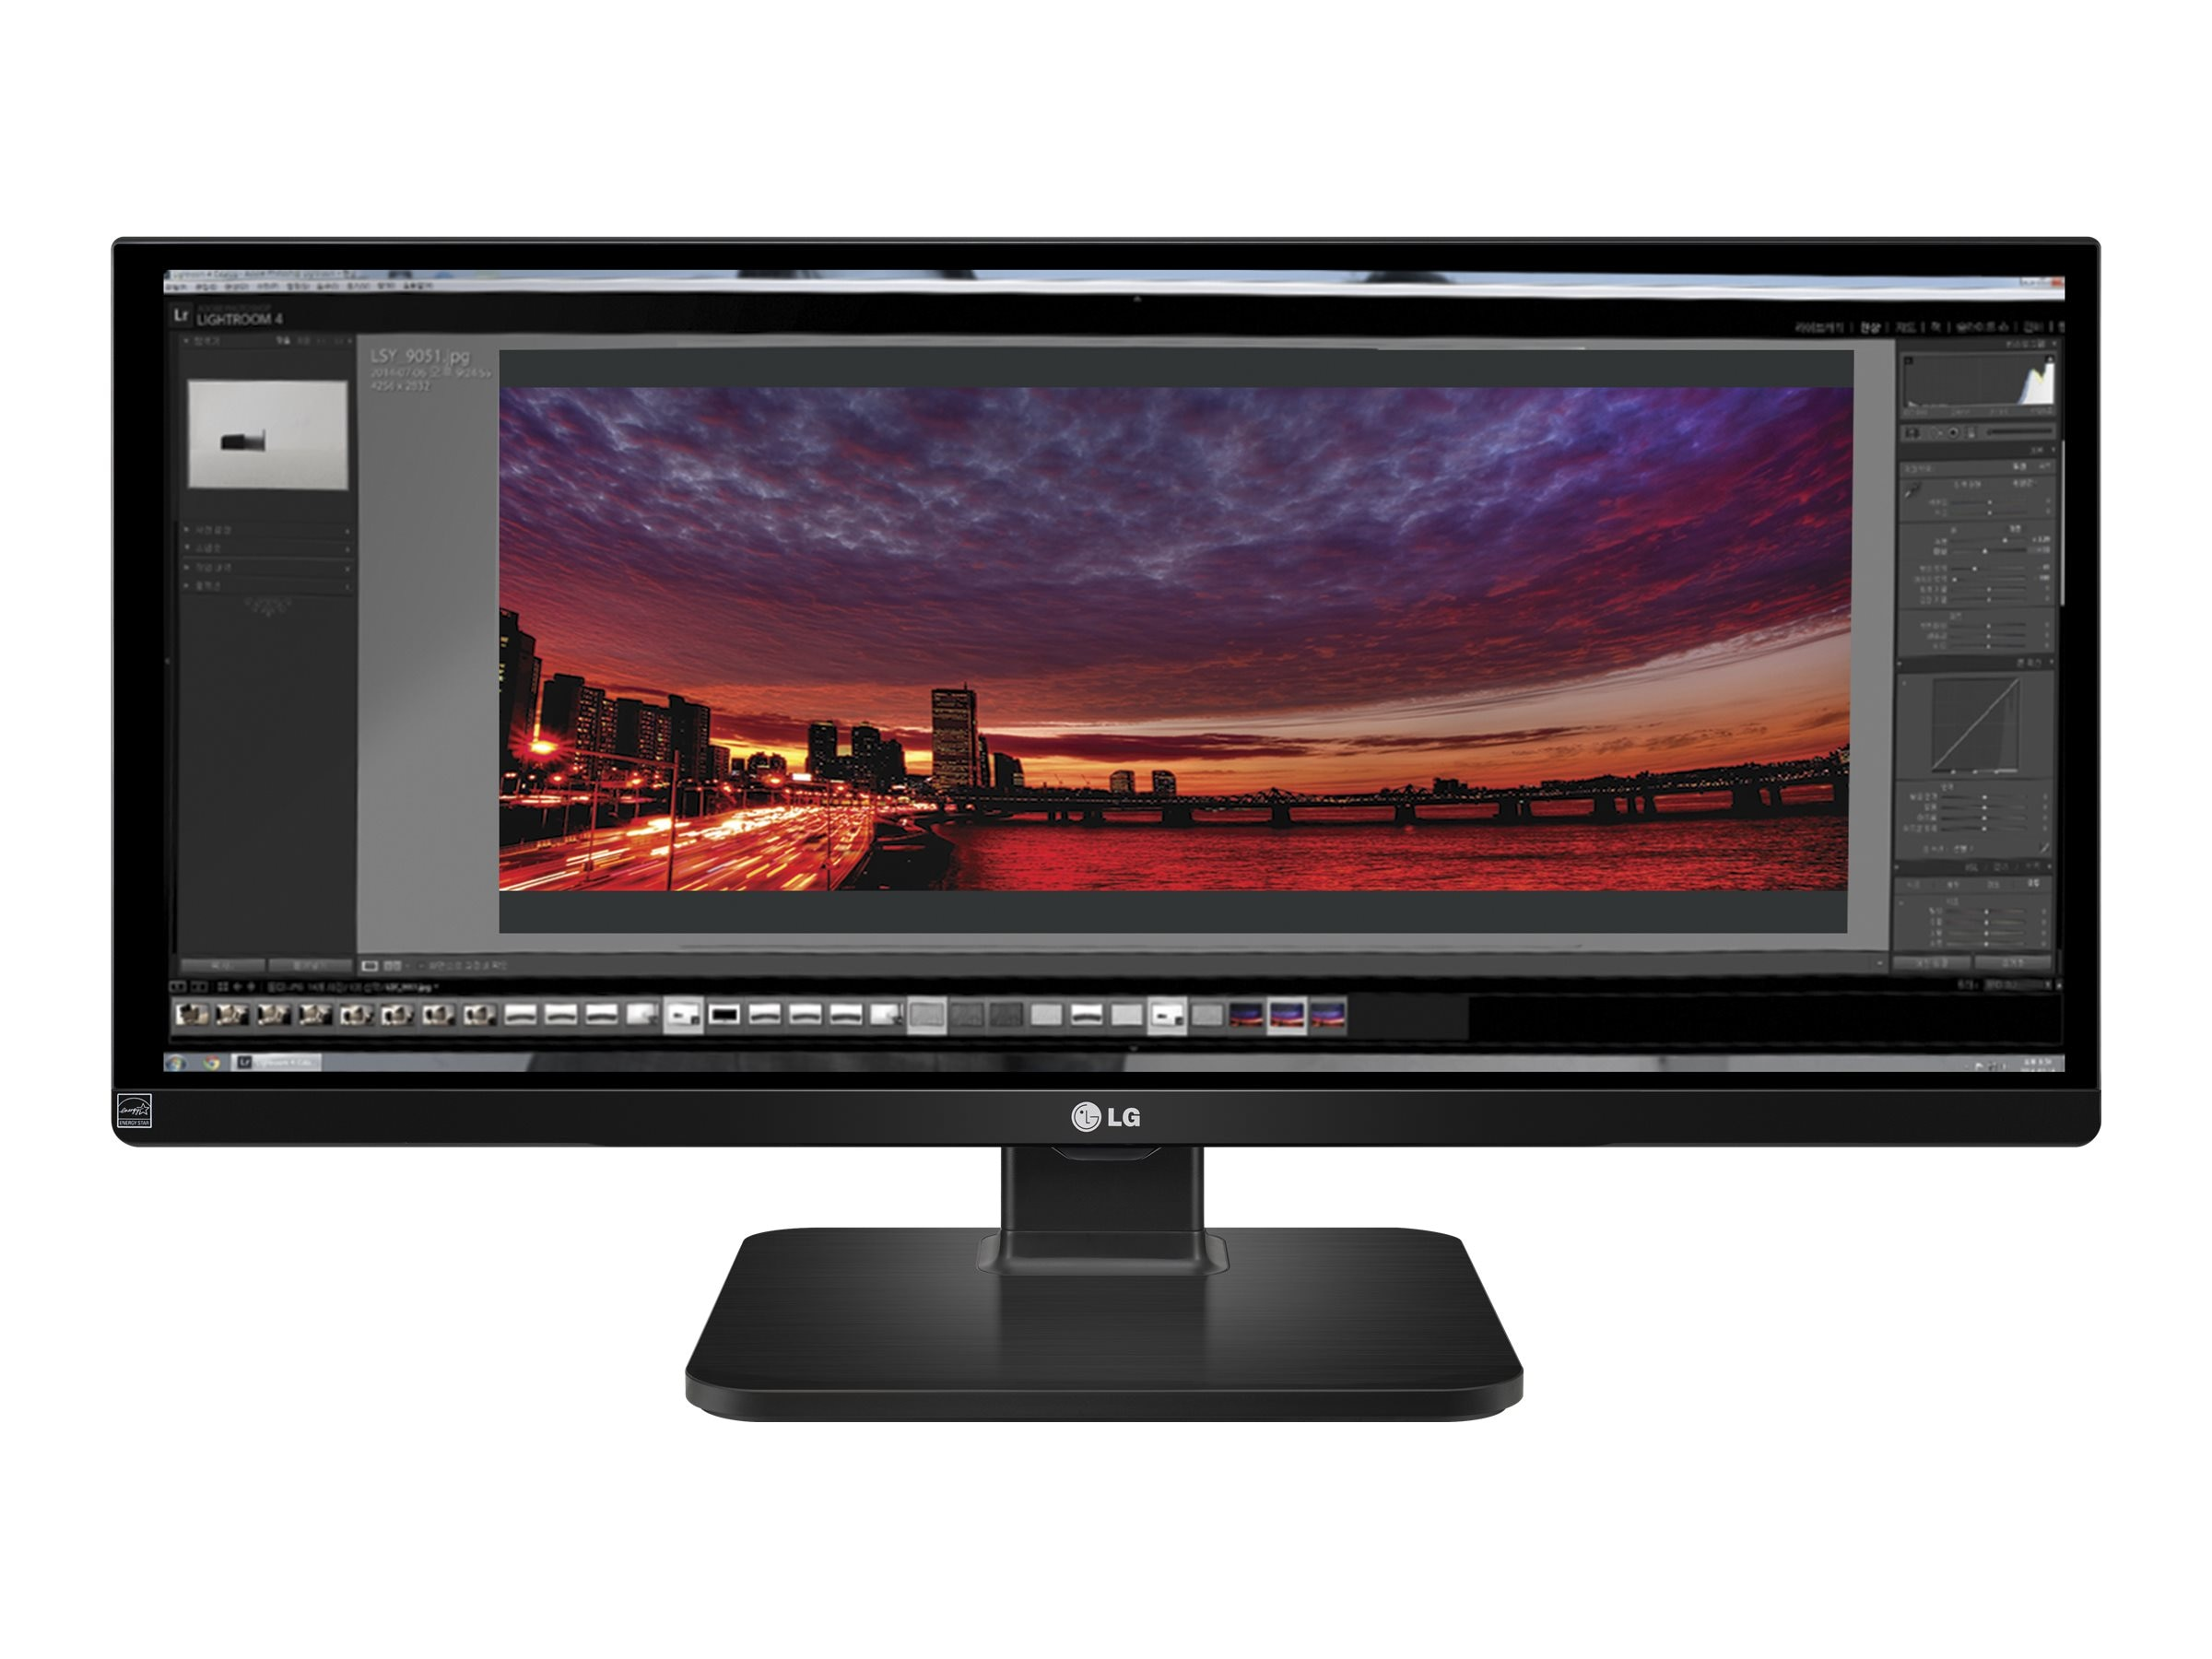 LG 29 UB55-B Full HD LED-LCD Ultrawide Monitor, Black, 29UB55-B, 18158914, Monitors